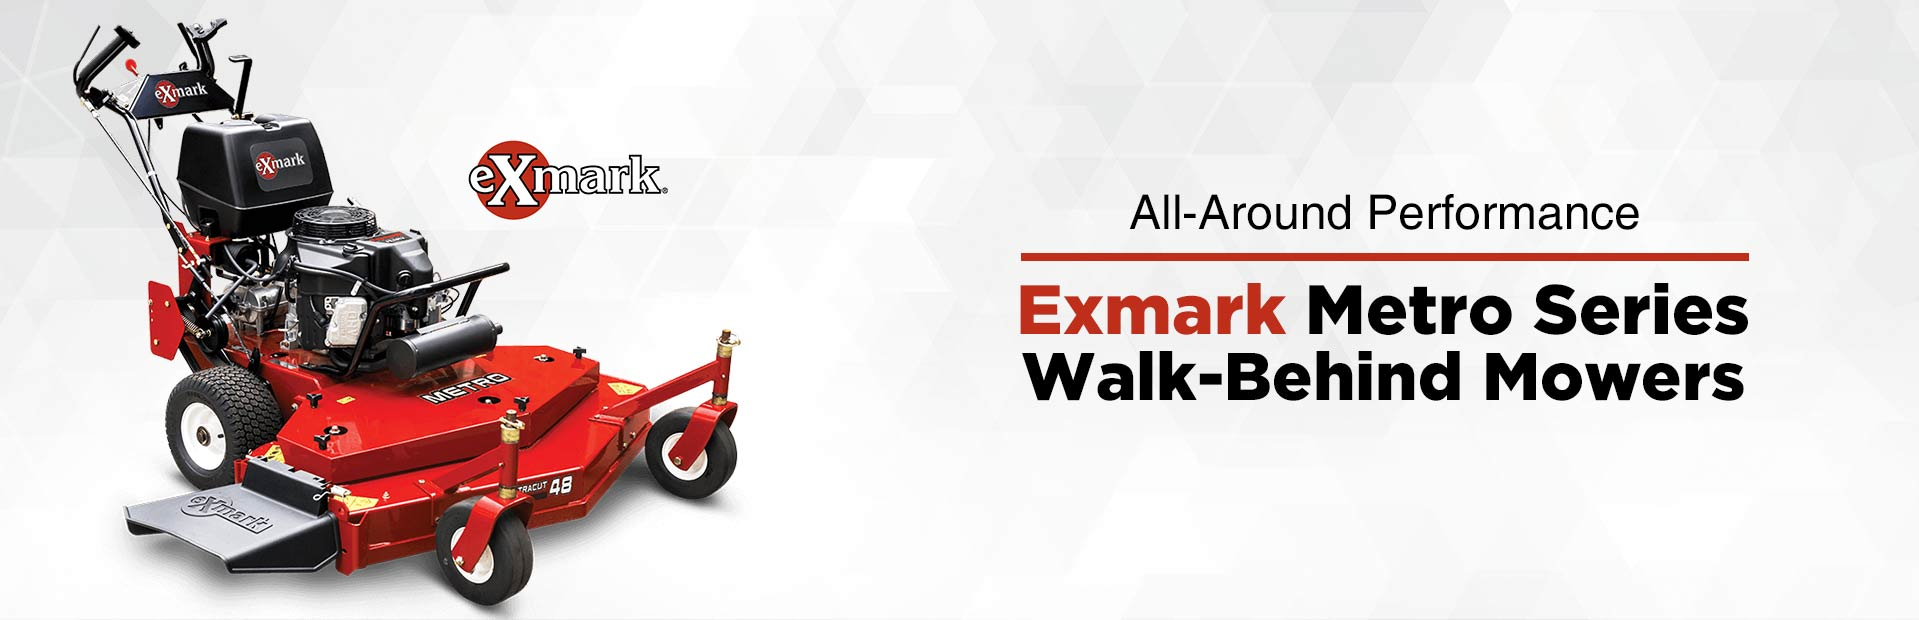 Exmark Metro Series Walk-Behind Mowers: Click here to view the models.